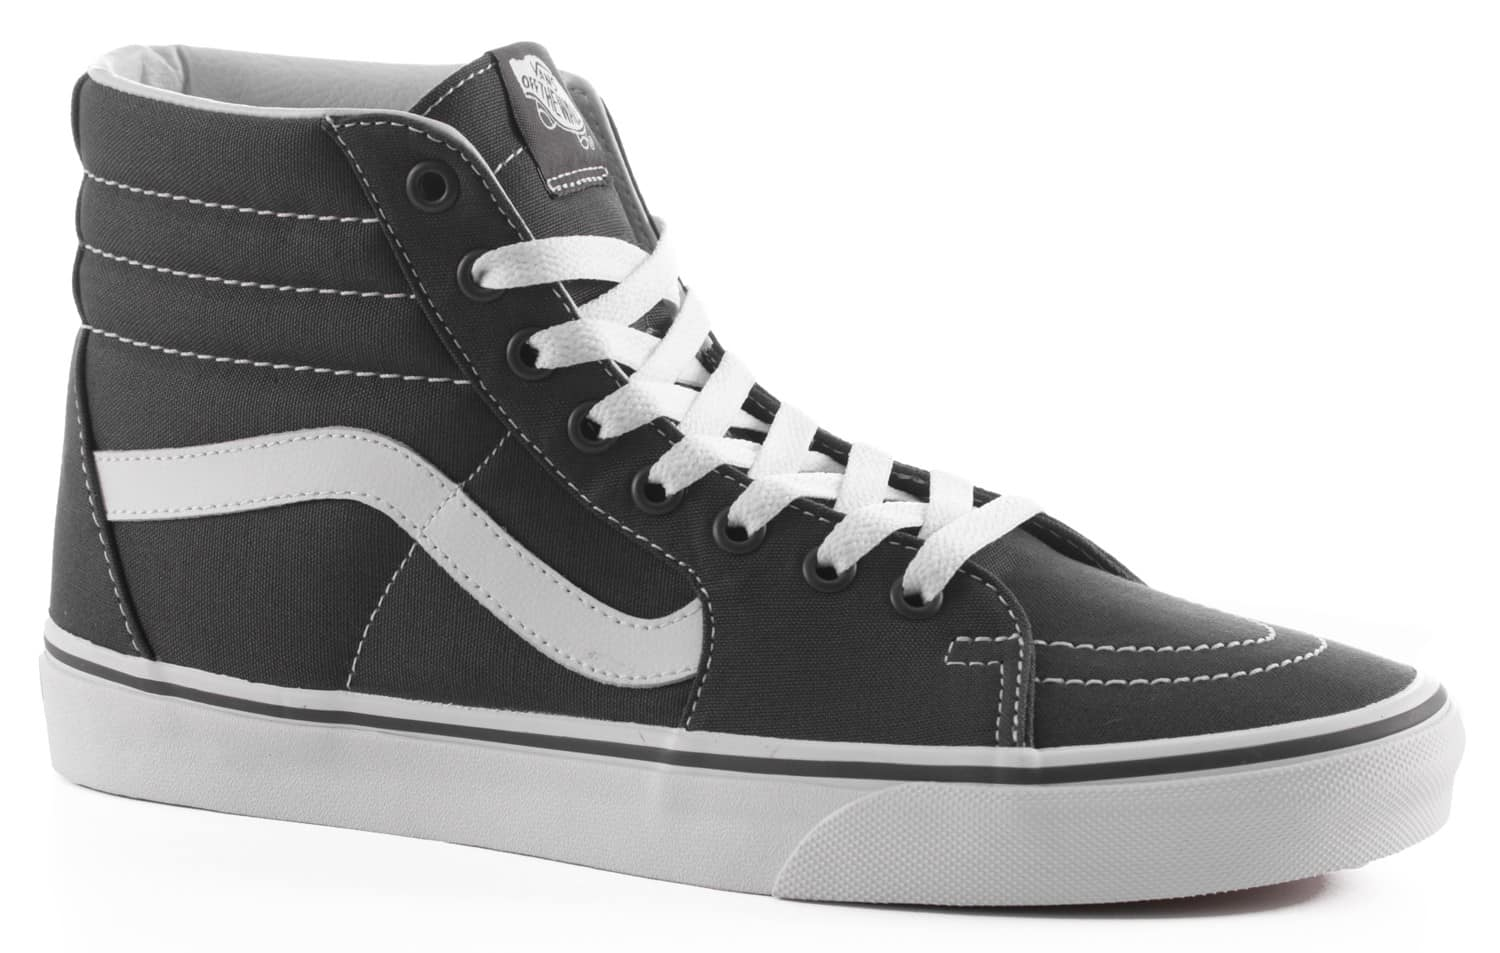 High Top Skate Shoes from Nike SB, Converse, Adidas, Vans, HUF and ...